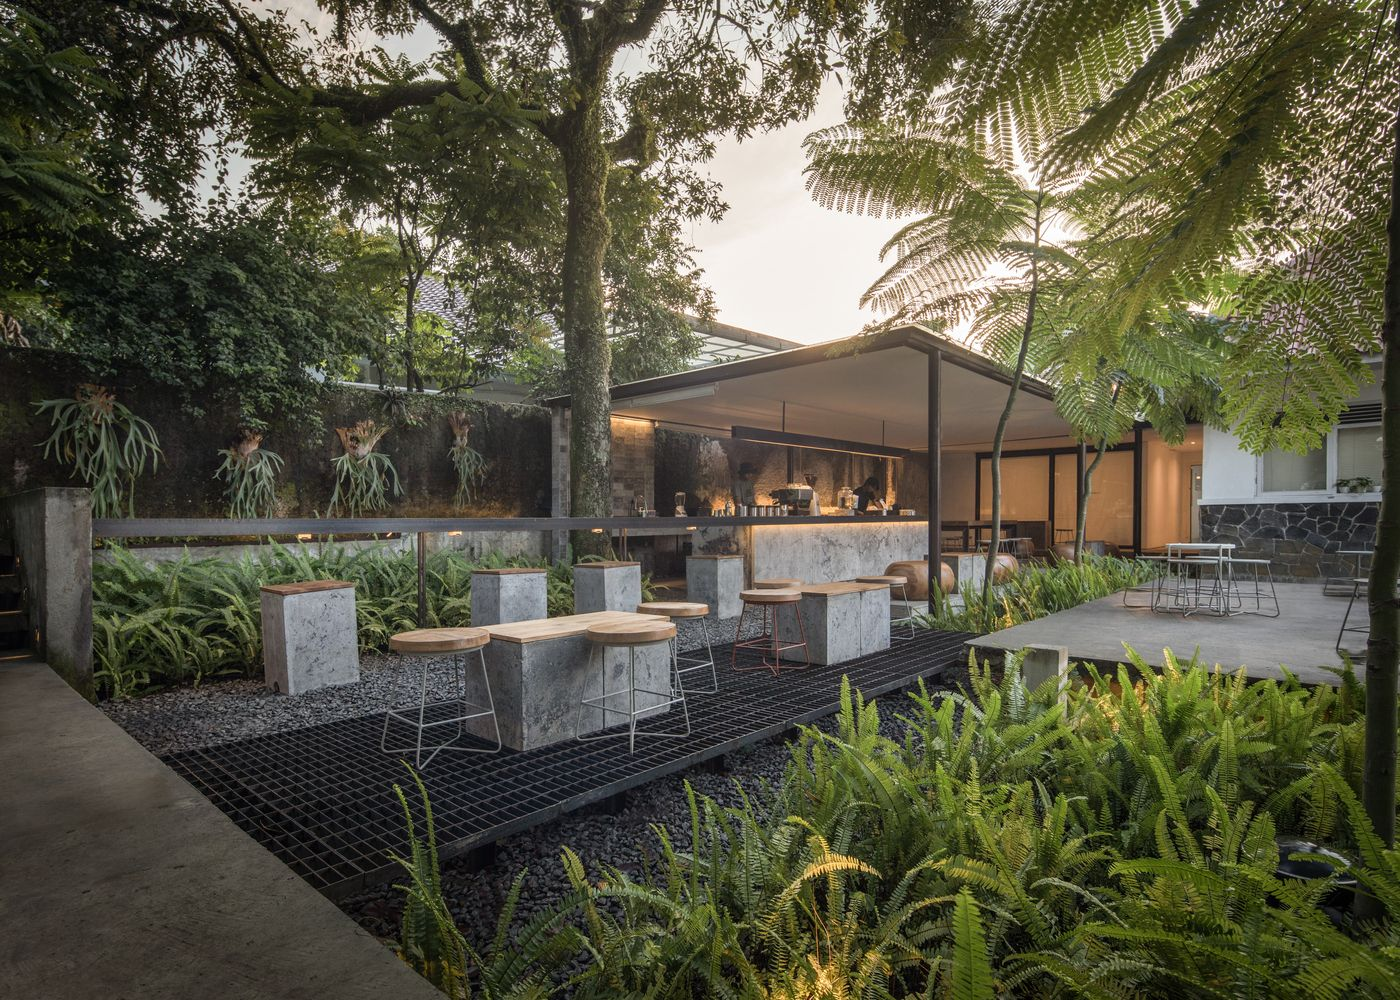 Gallery Of Kilogram Coffee Shop Pranala Associates 2 In 2020 Coffee Shop Modern Landscaping Colonial House